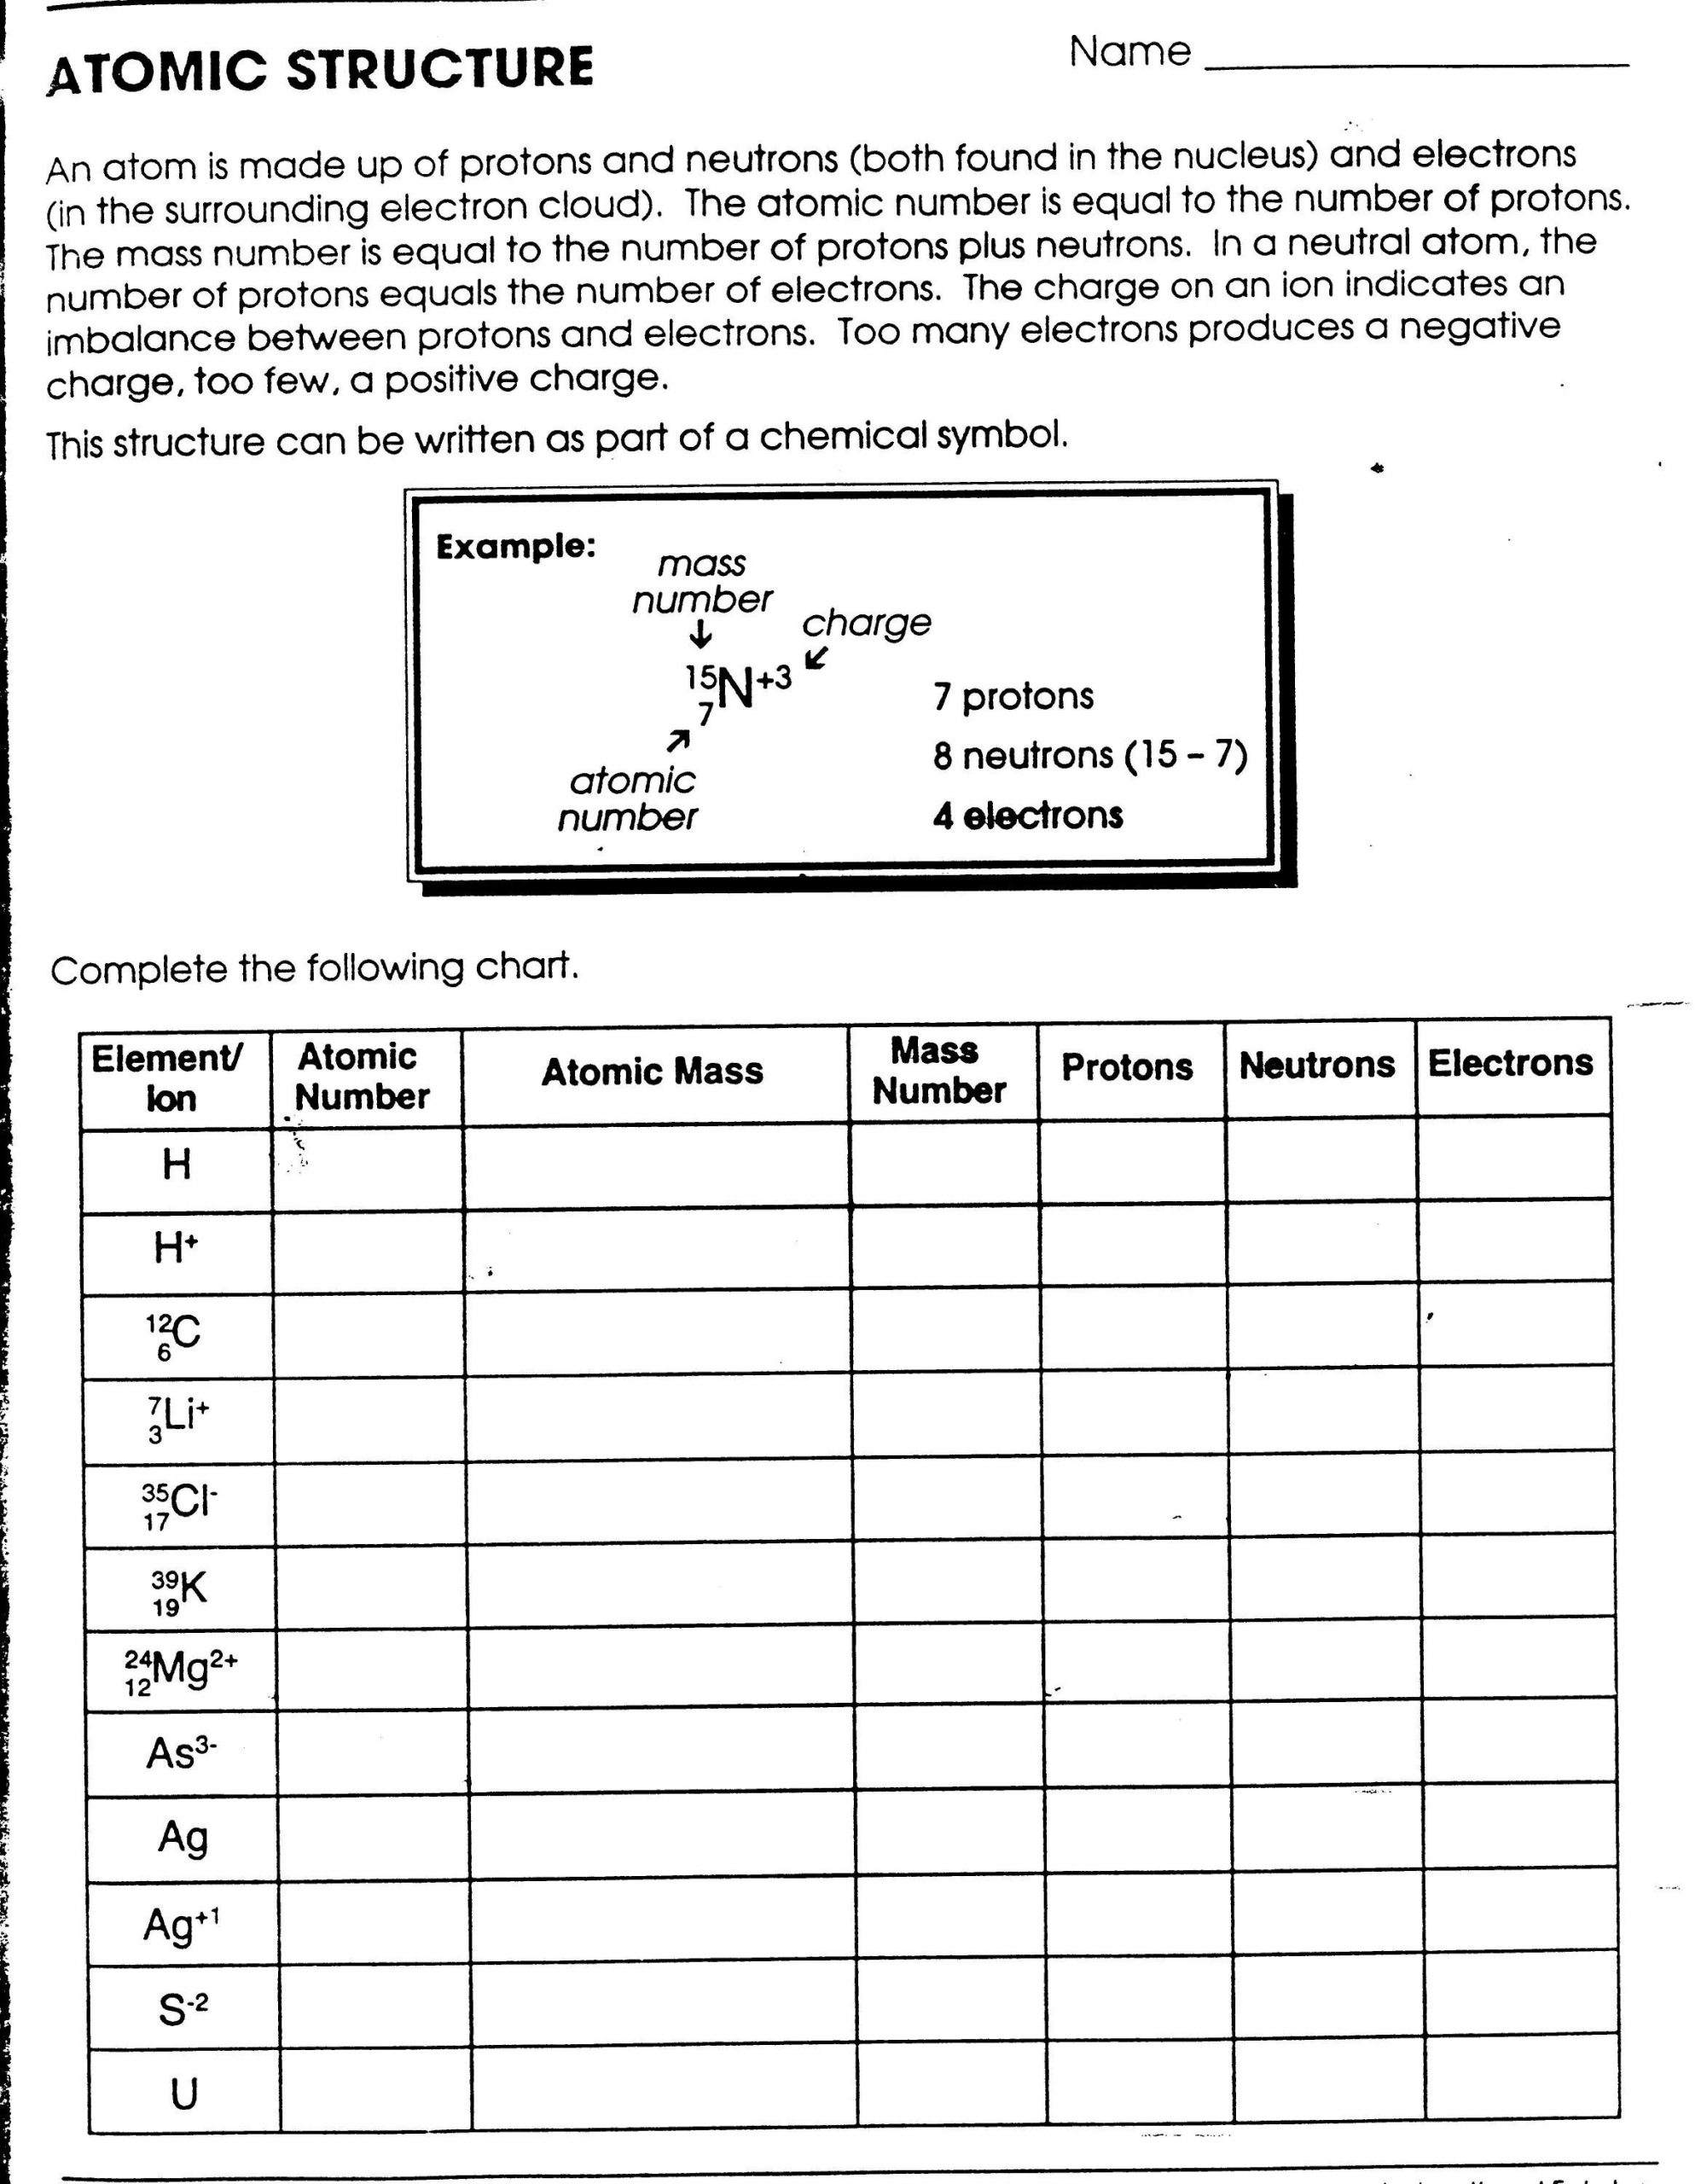 Atomic Mass and Number Worksheet